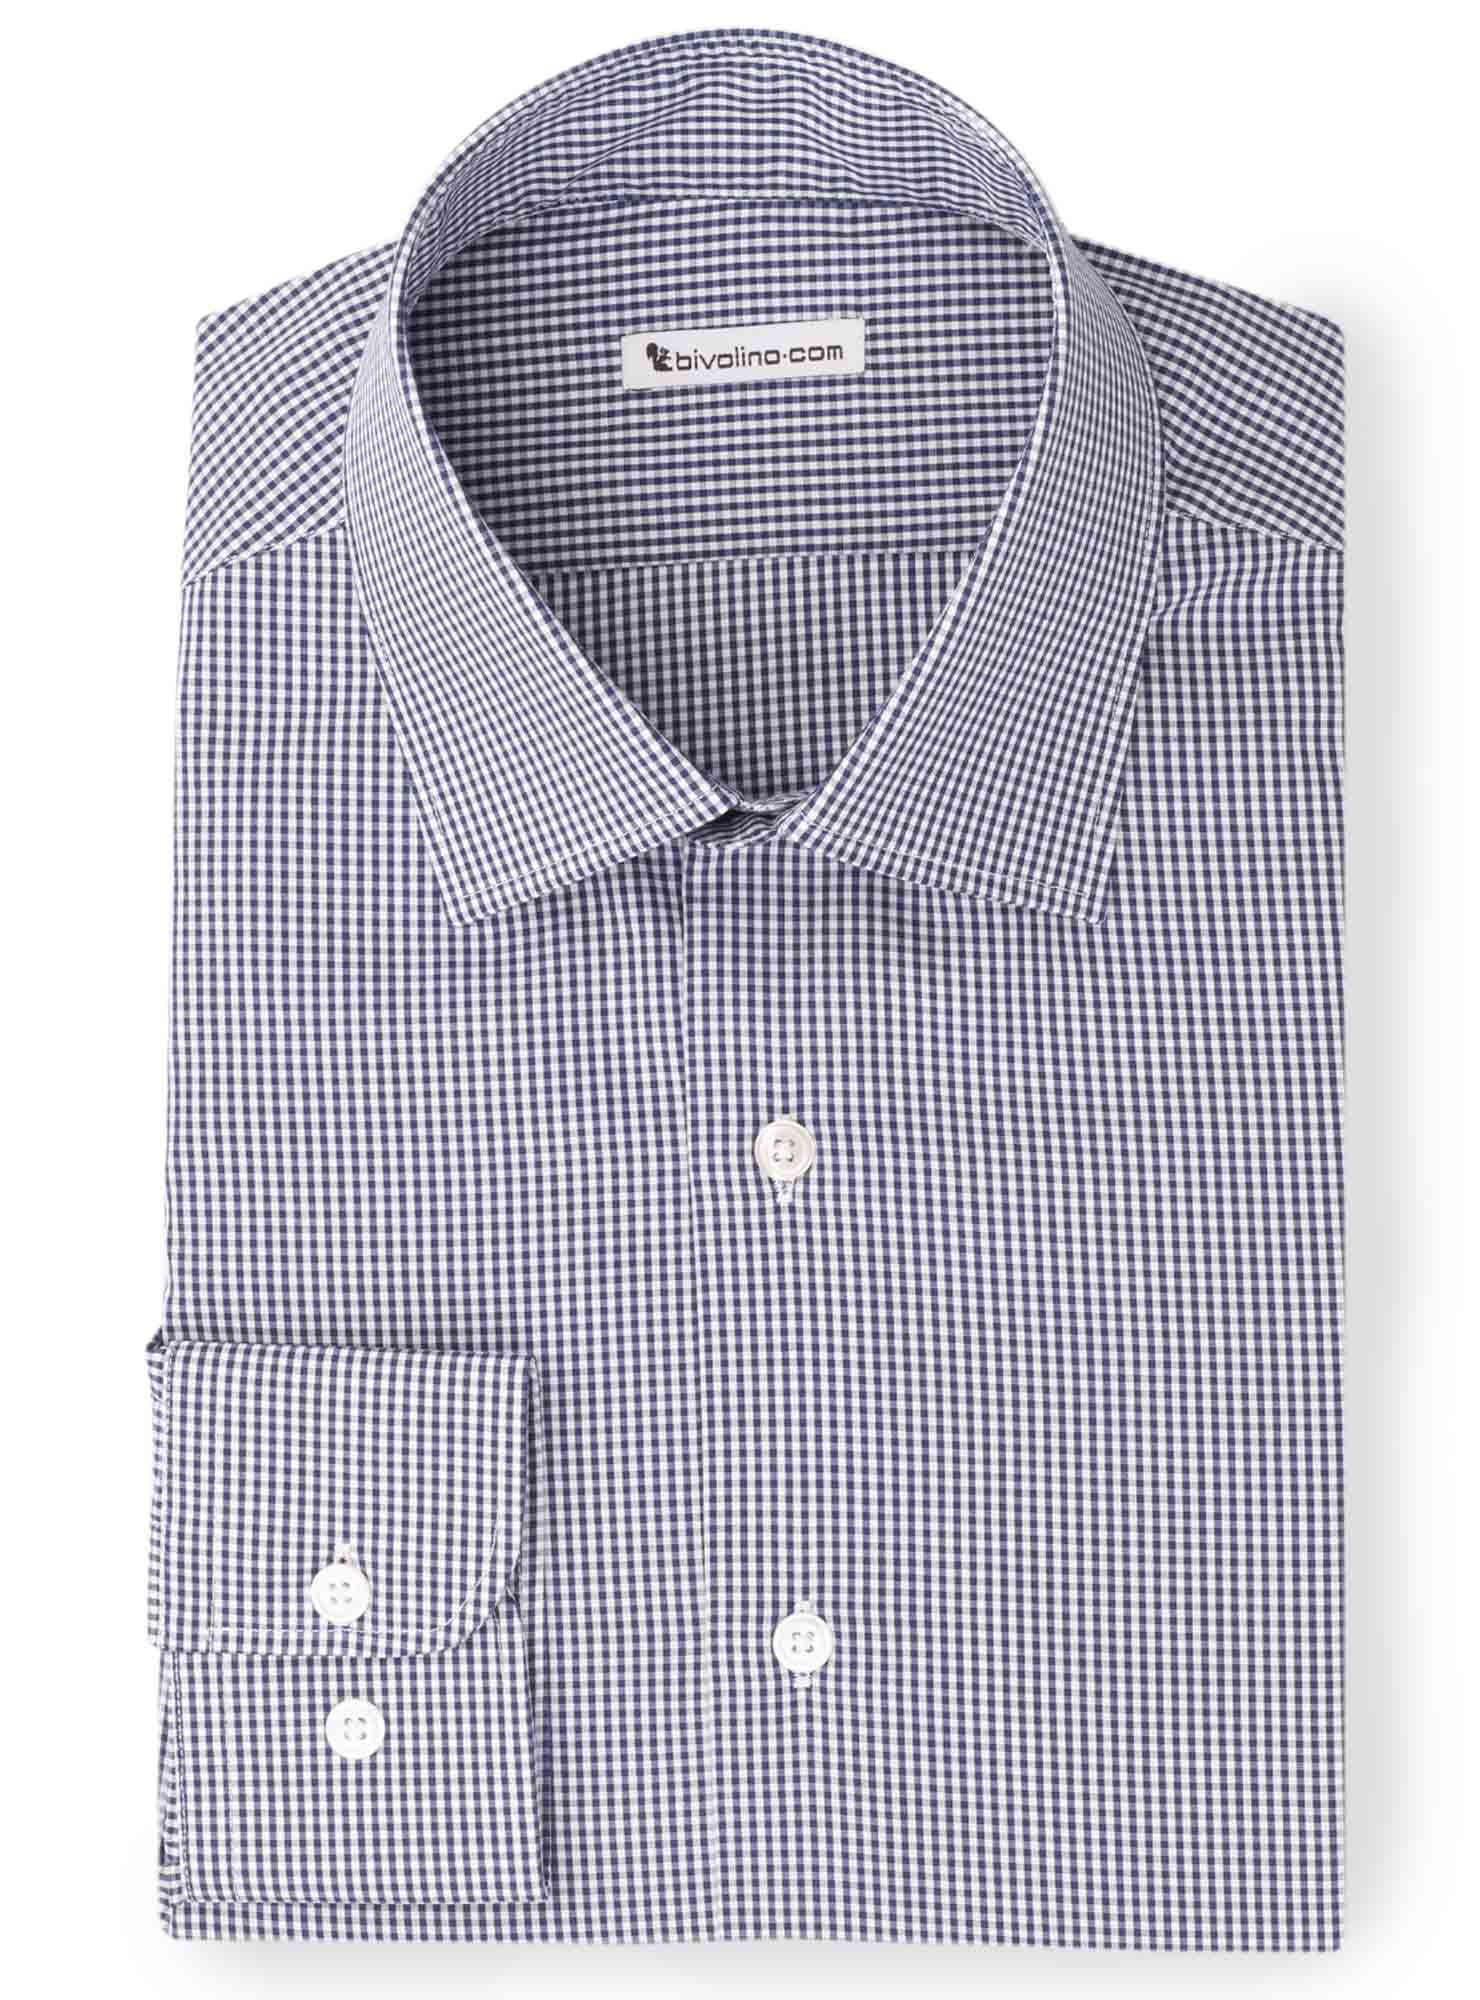 BERBIANO -  Navy poplin gingham shirt - Kento 2